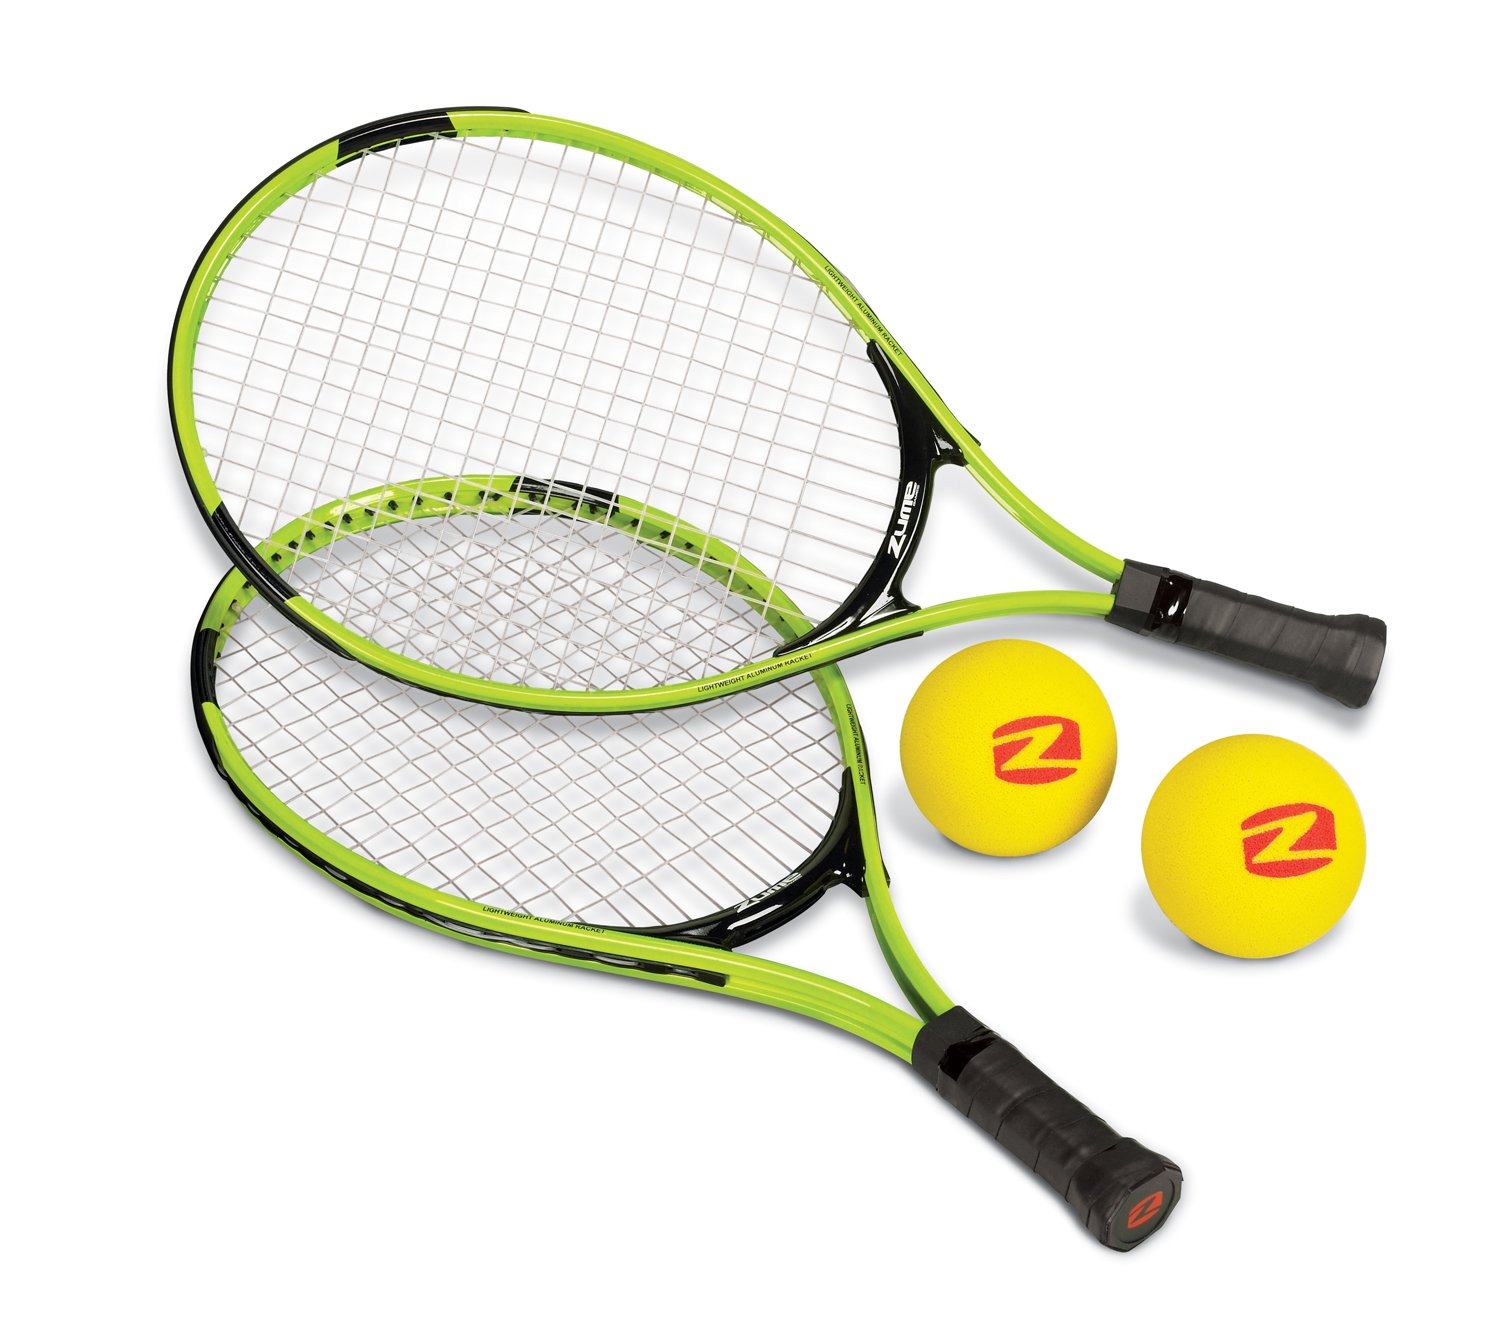 amazon com zume games tenniz set table tennis sets sports